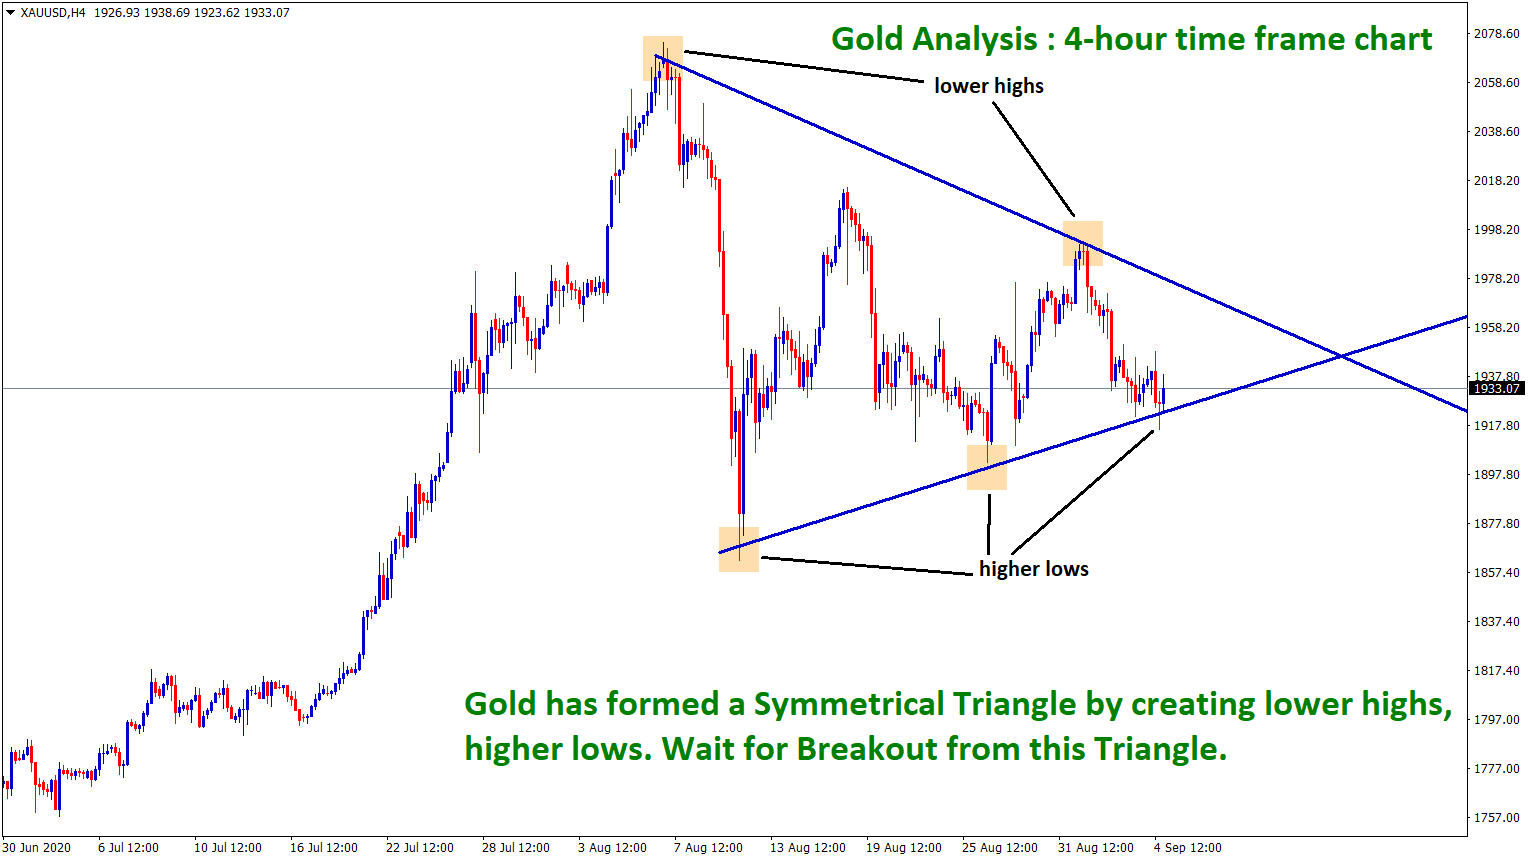 gold symmetrical Triangle pattern in 4hr chart